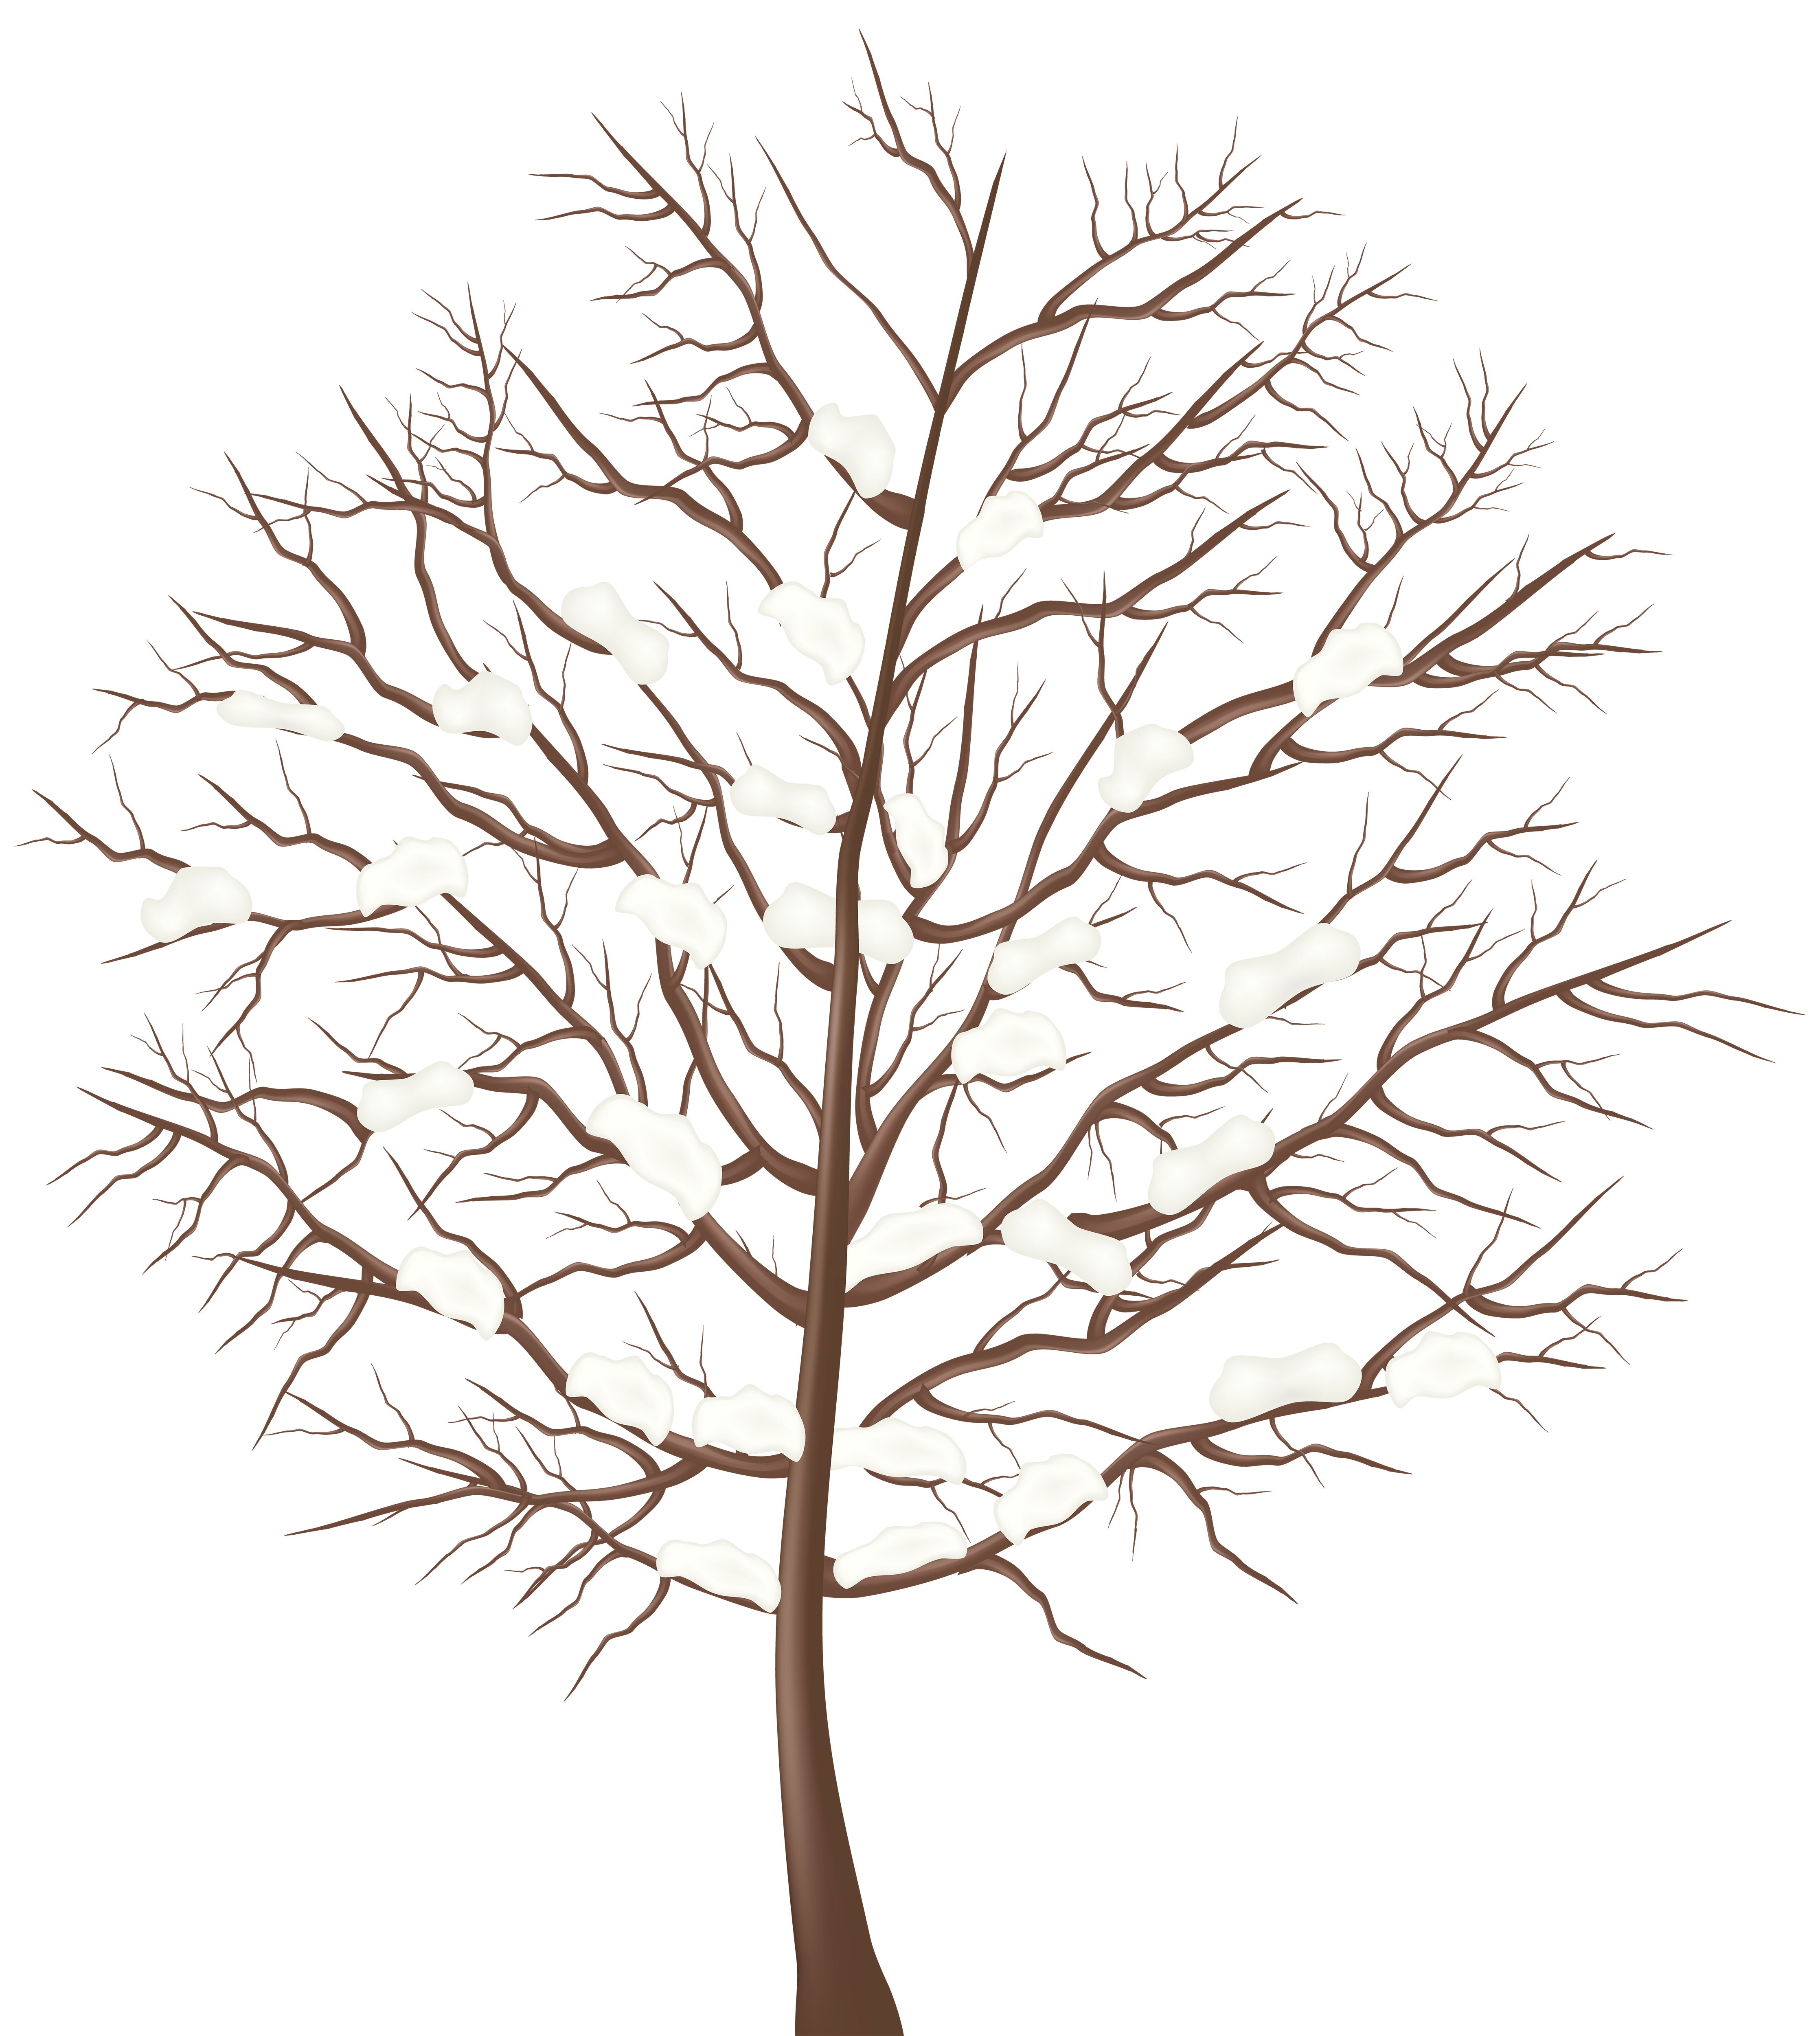 Trees clipart winter. Tree transparent png clip